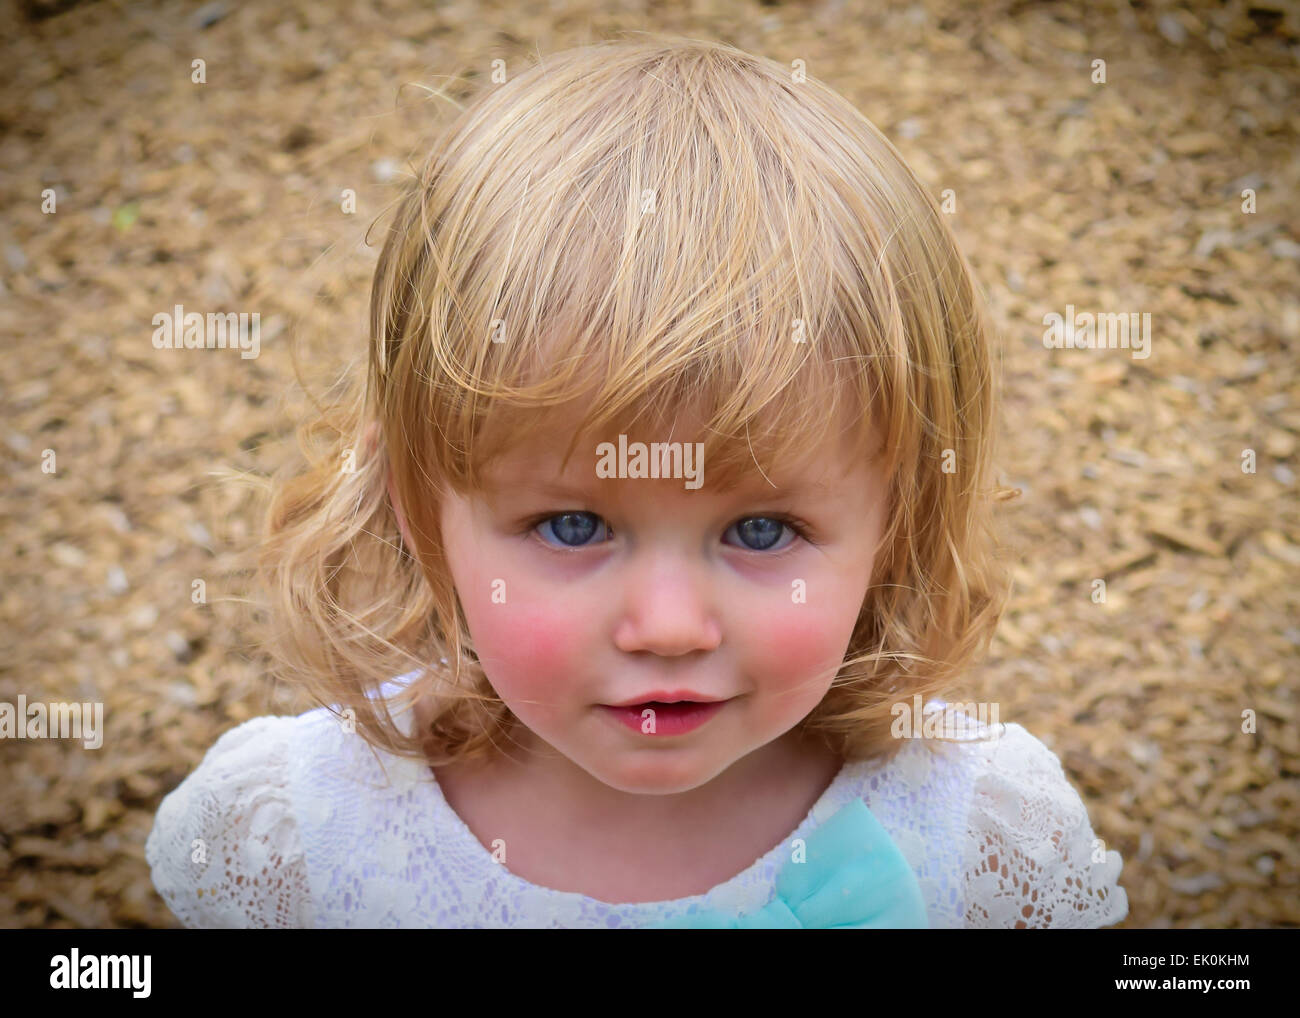 Portrait of a small, blond, girl at a playground - Stock Image